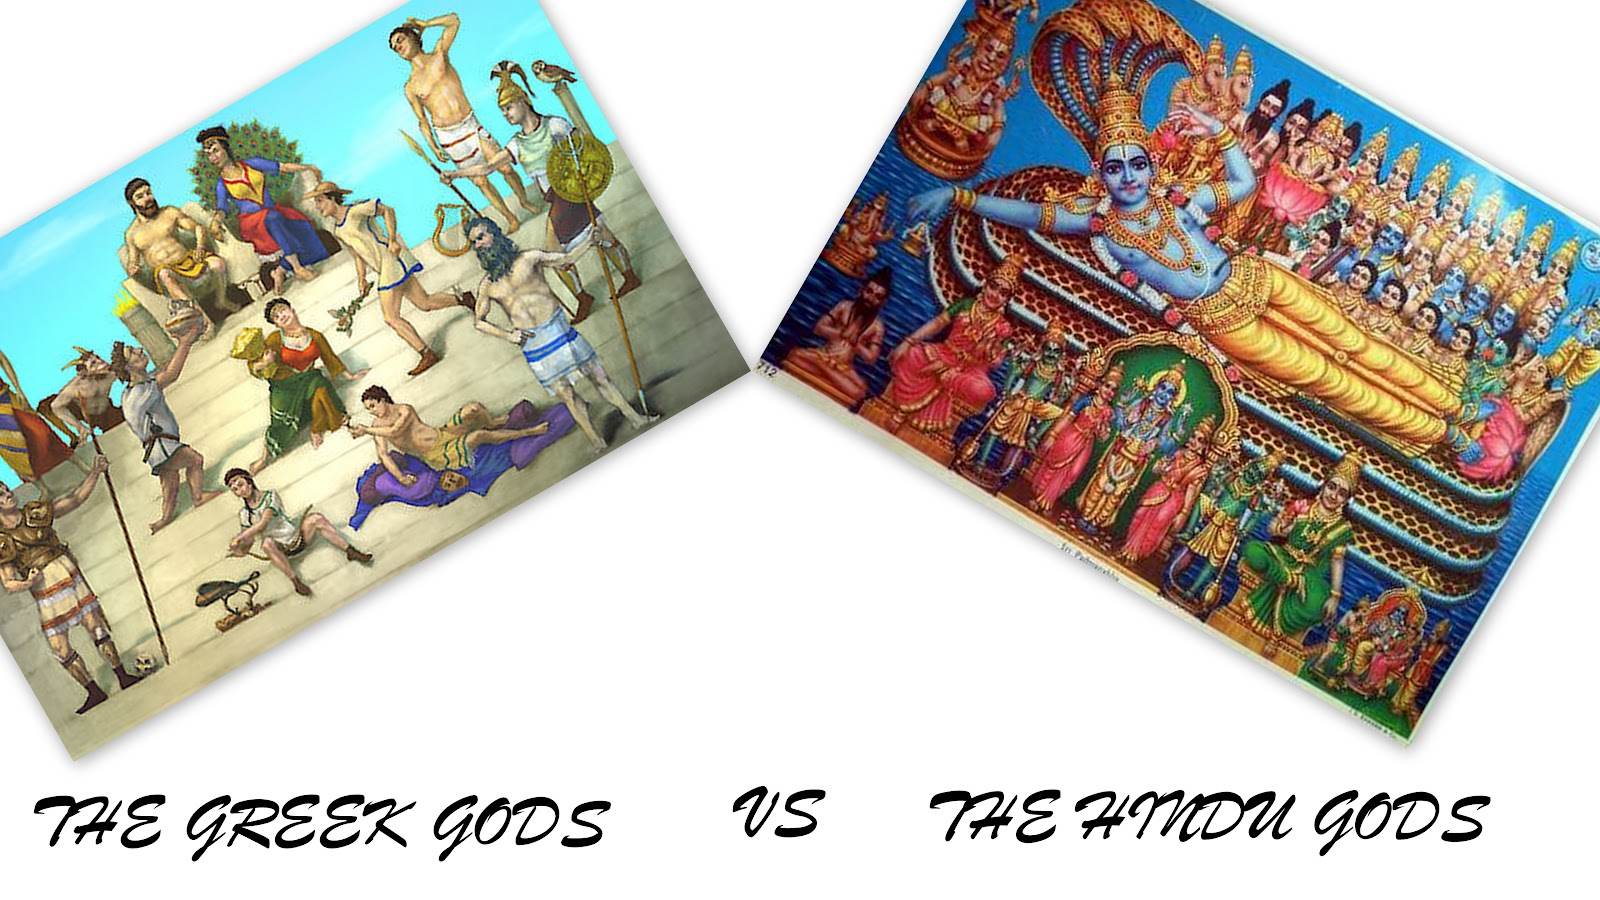 a comparison of two epics ramayana and mahabharata Ramayana scientific dating wrong  the fact that the ramayana and mahabharata are proved by dating them through internal references in the epics,.